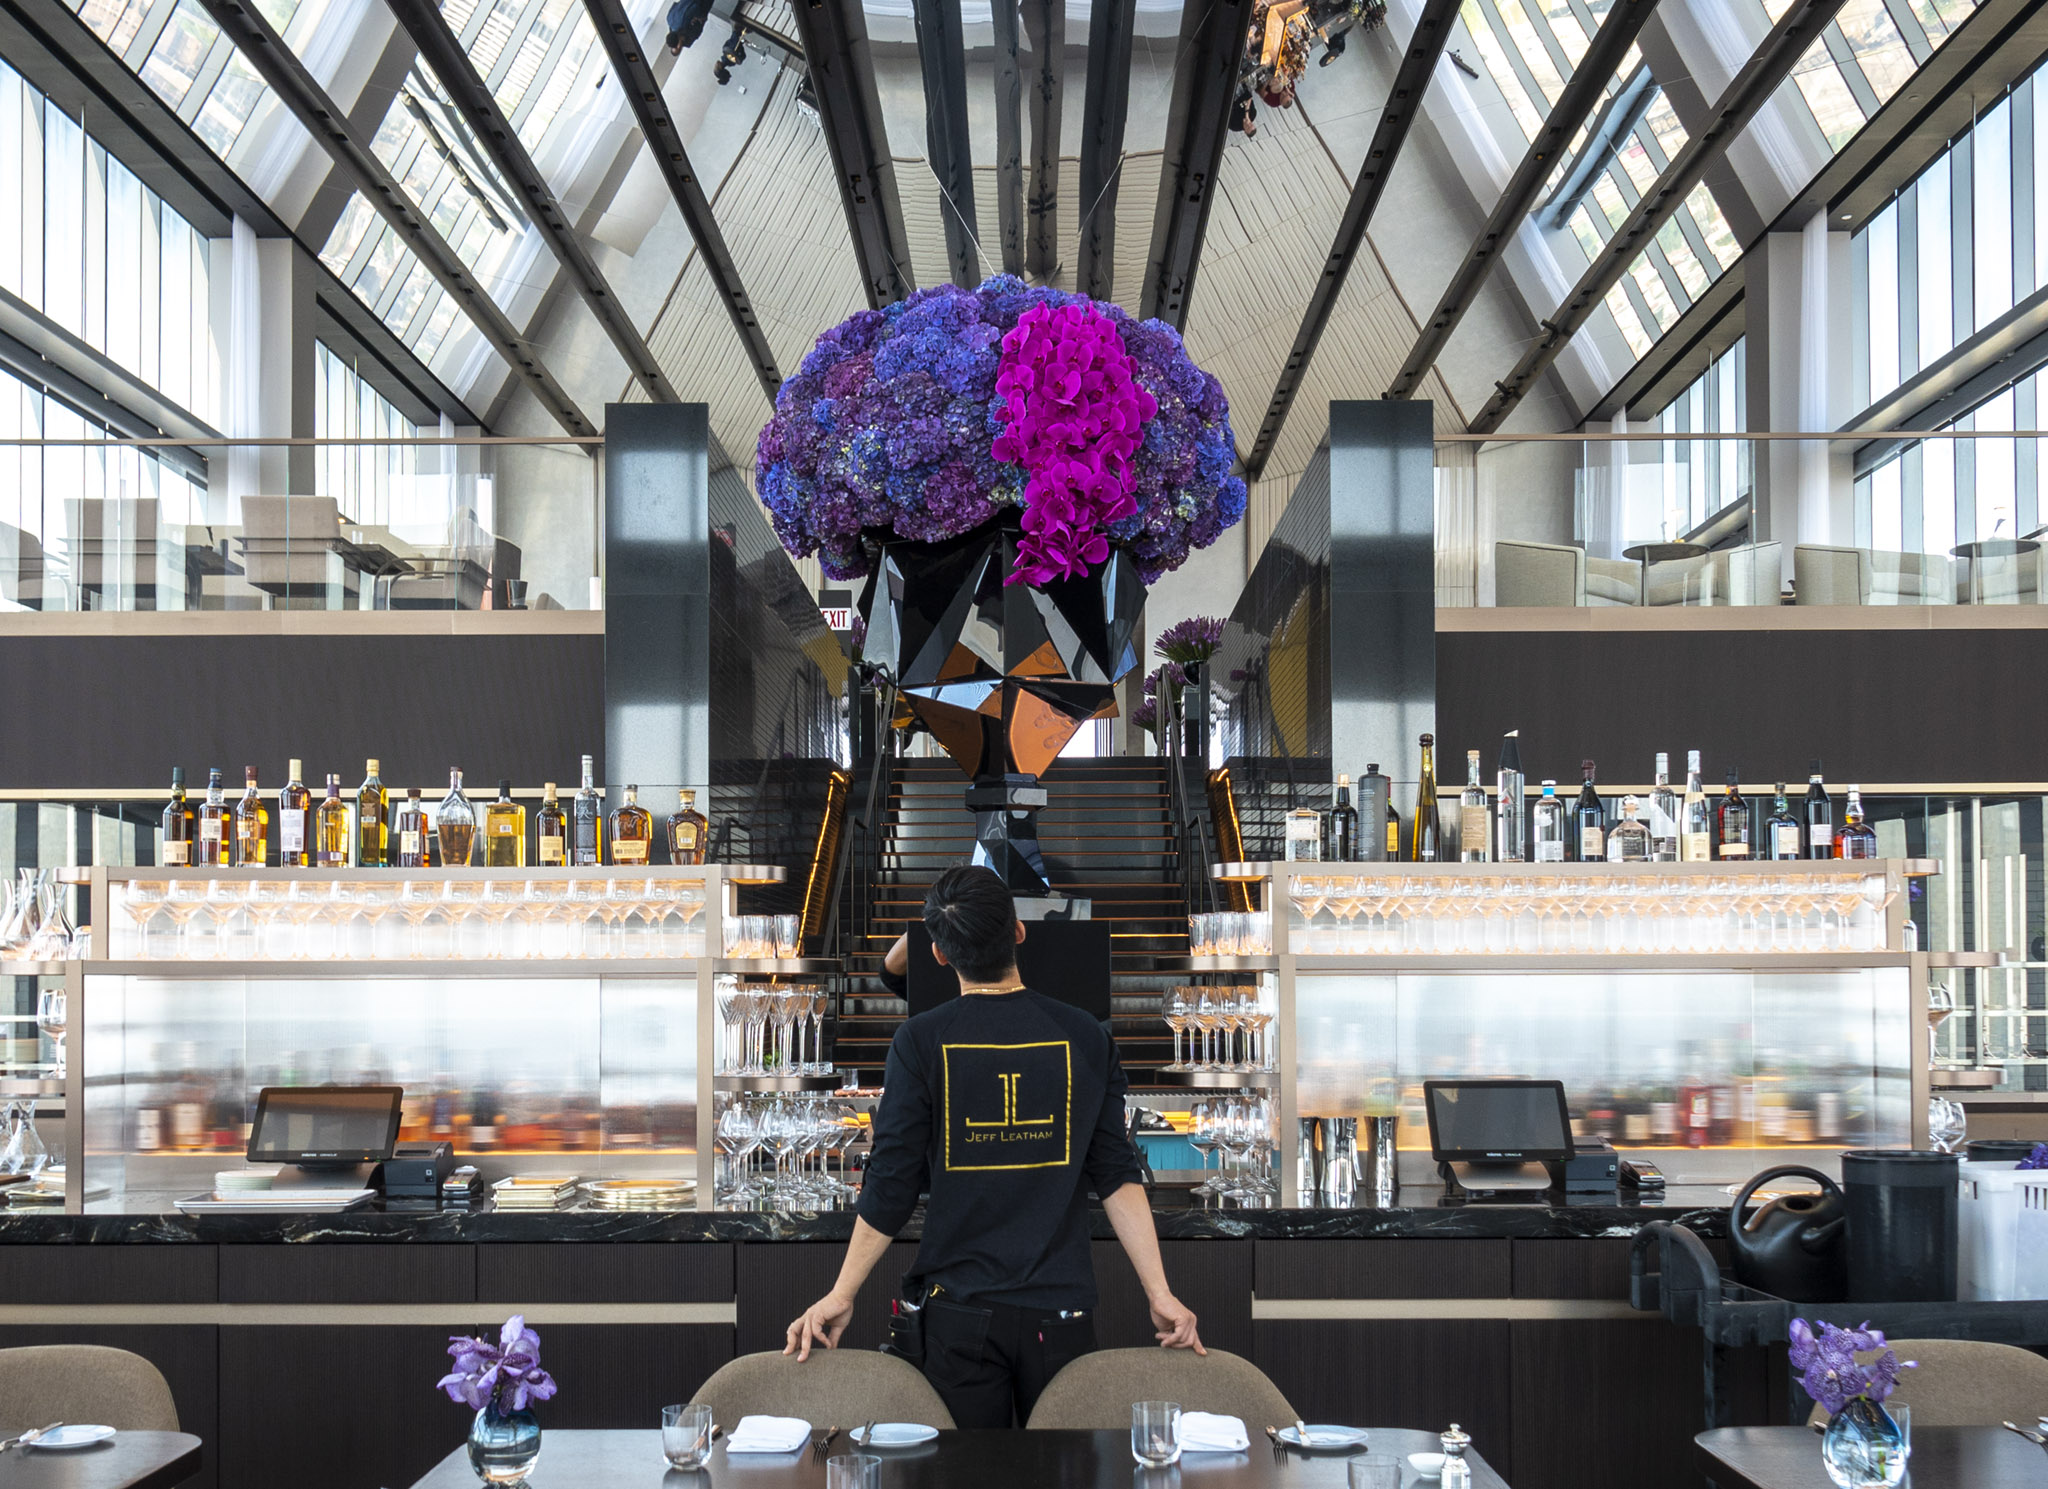 New Four Seasons Philadelphia 13 Things To Know On Top Of Philly News